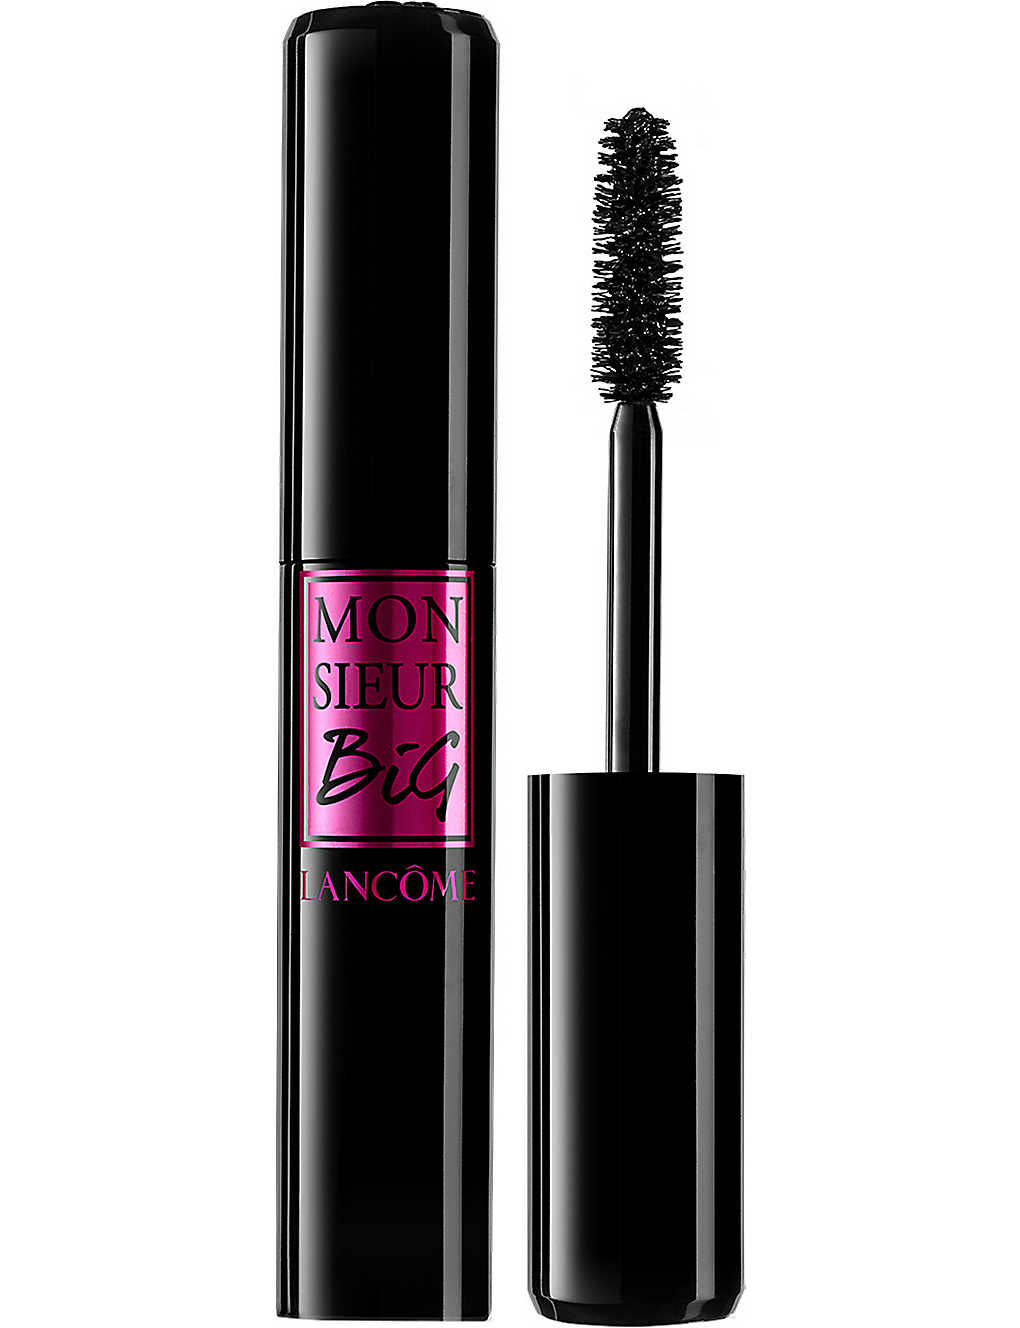 LANCOME: Monsieur Big Mascara